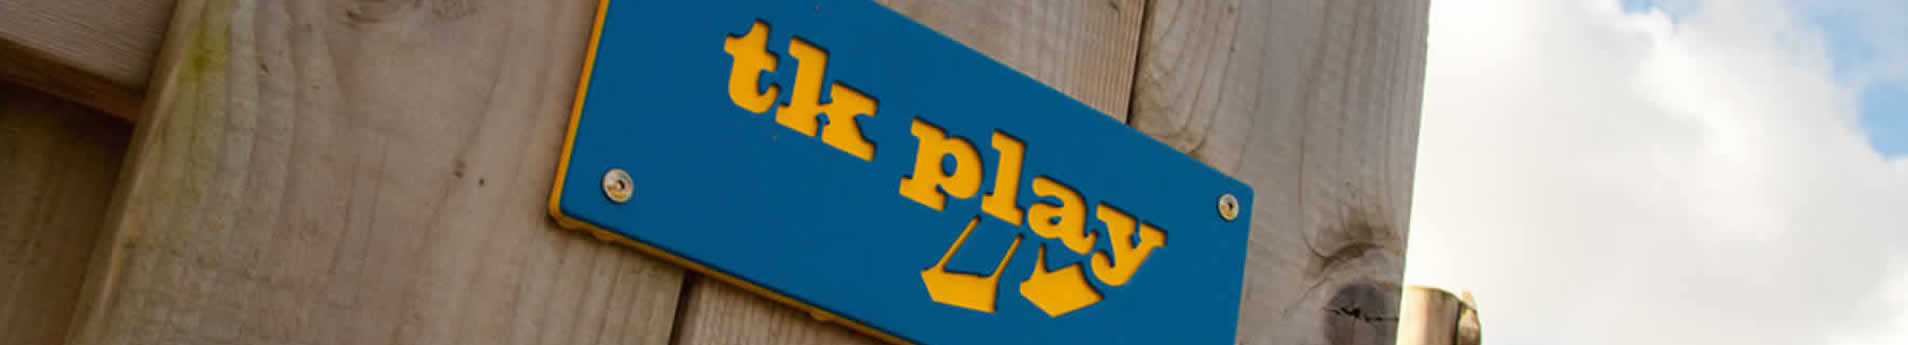 TK Play and why we're recommended by so many for playground services in the UK